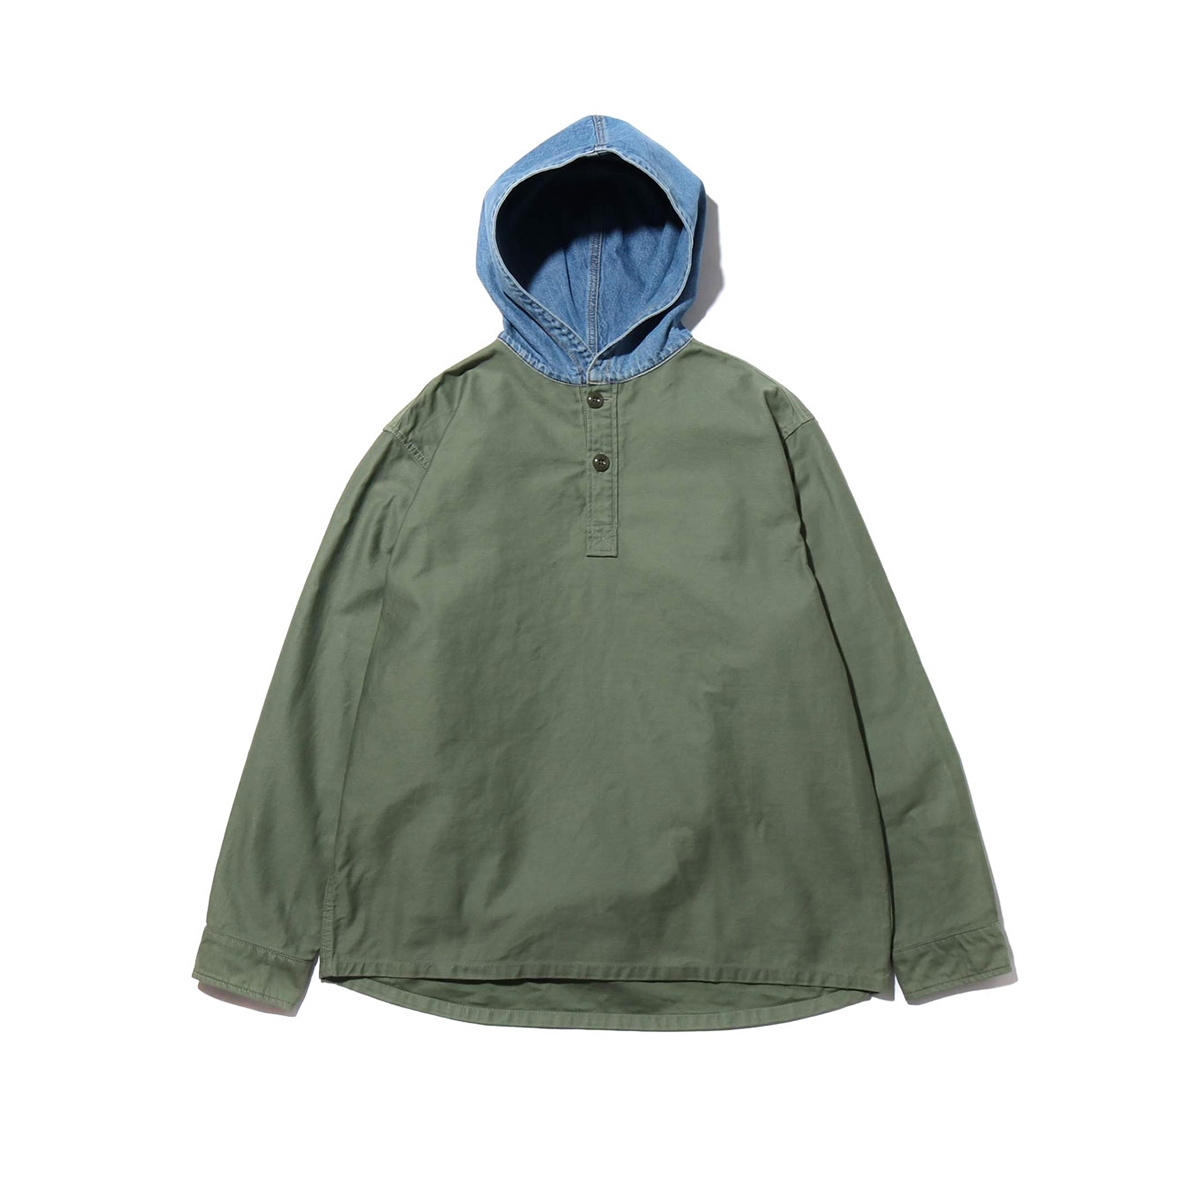 ATMOS LAB PULLOVER HOODED SHIRT